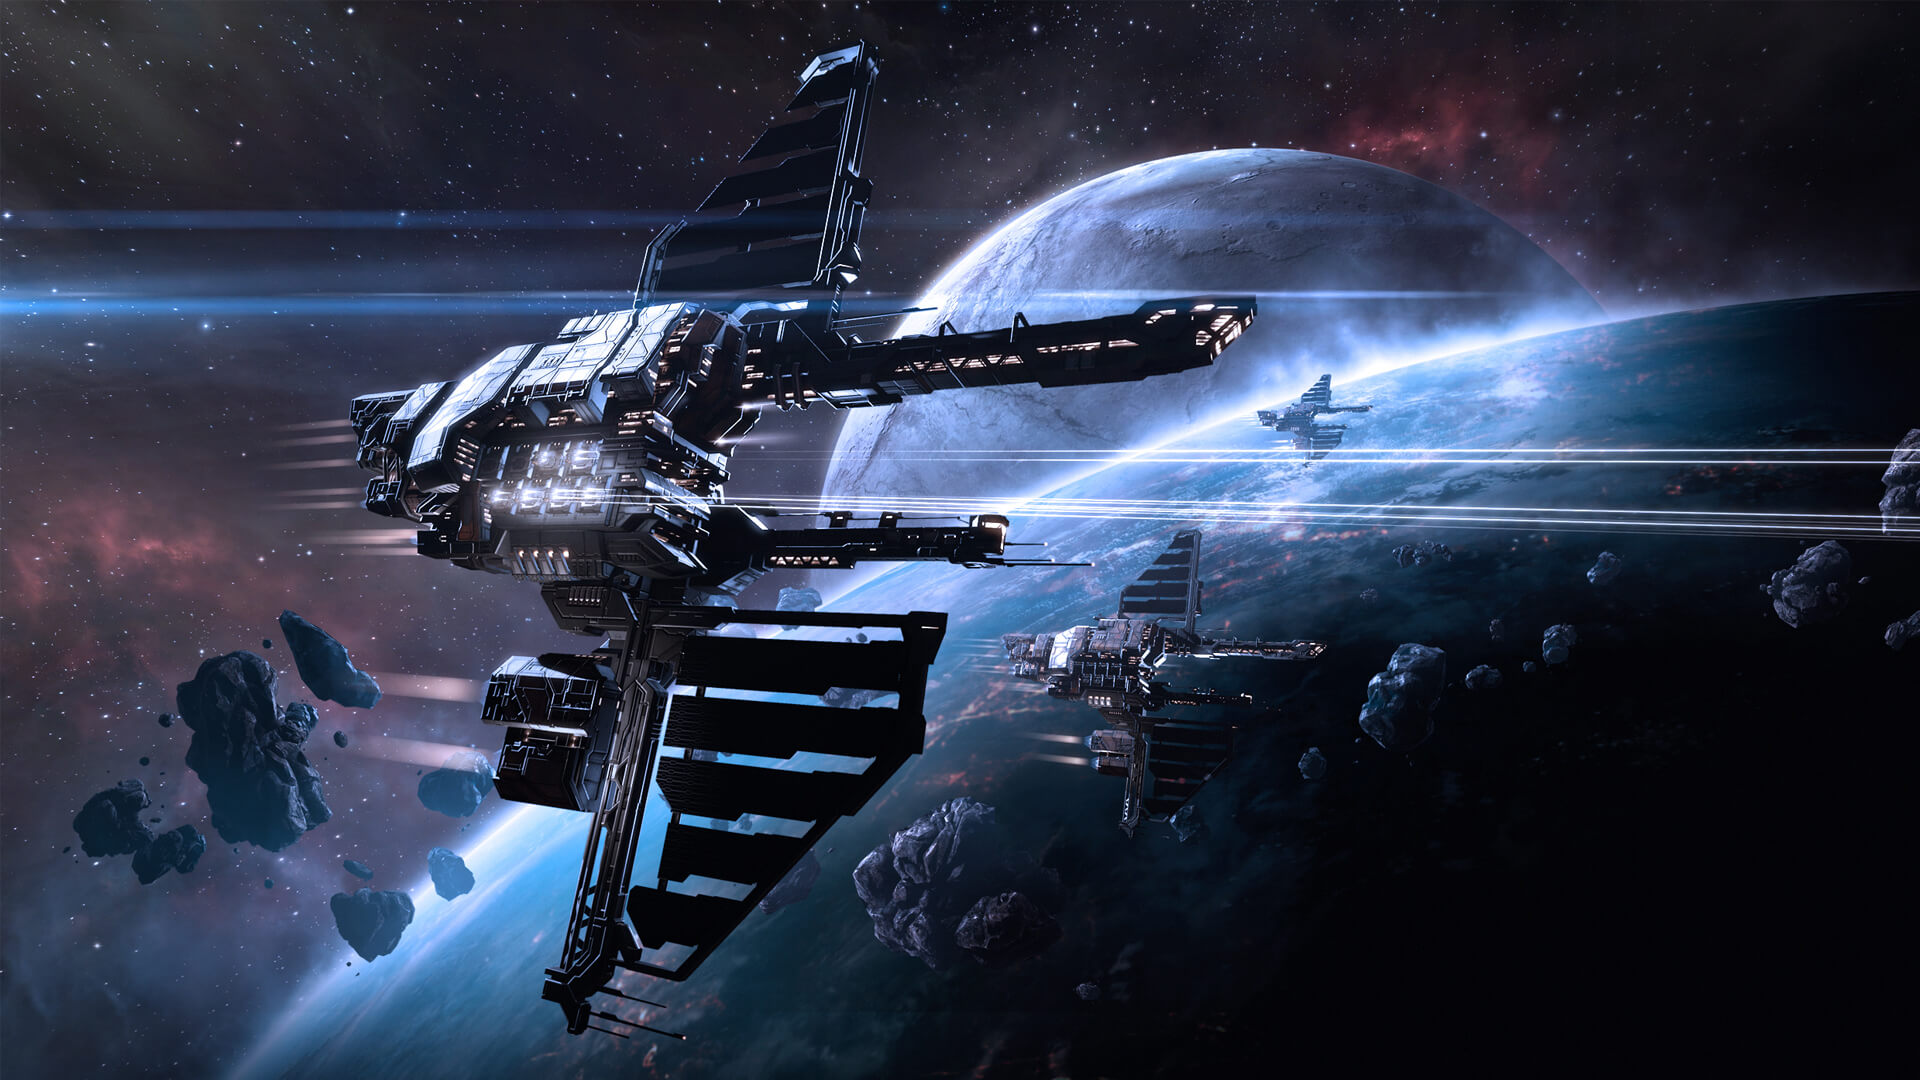 MMORPG - EVE Online, the #1 Space MMO. A spaceship flies by a planet